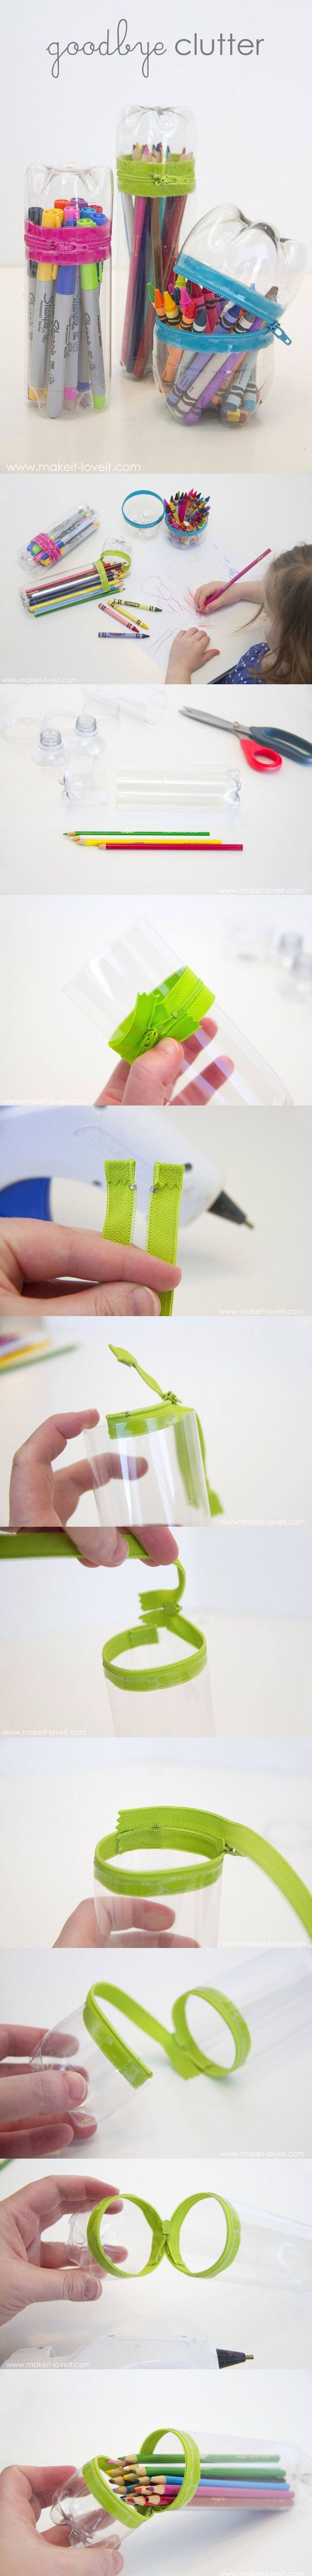 No-Sew Zipper Cases From Plastic Bottles - makeit-loveit.com - Estuches reciclando botellas plástico